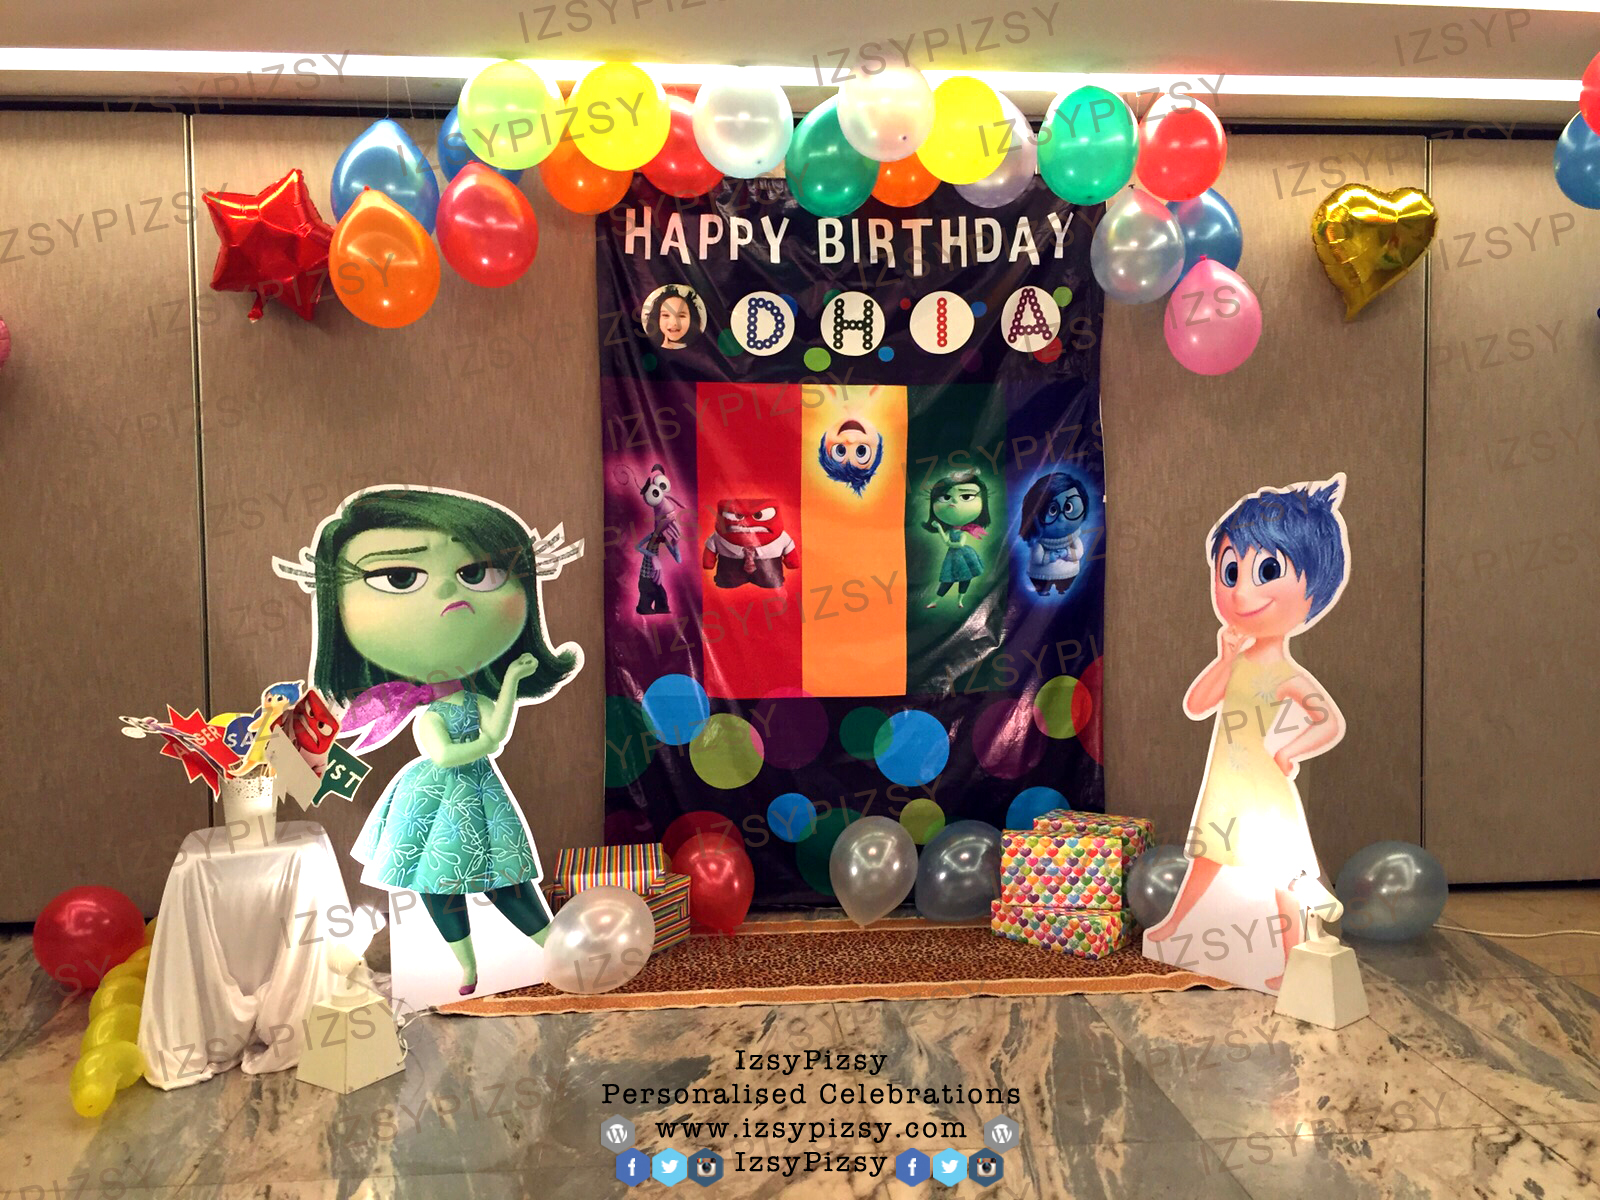 photo idea for birthday ; inside-out-joy-anger-fear-disgust-sadness-bing-bong-riley-candy-buffet-dessert-doorgift-idea-birthday-party-photobooth-prop-banner-backdrop-standee-balloon